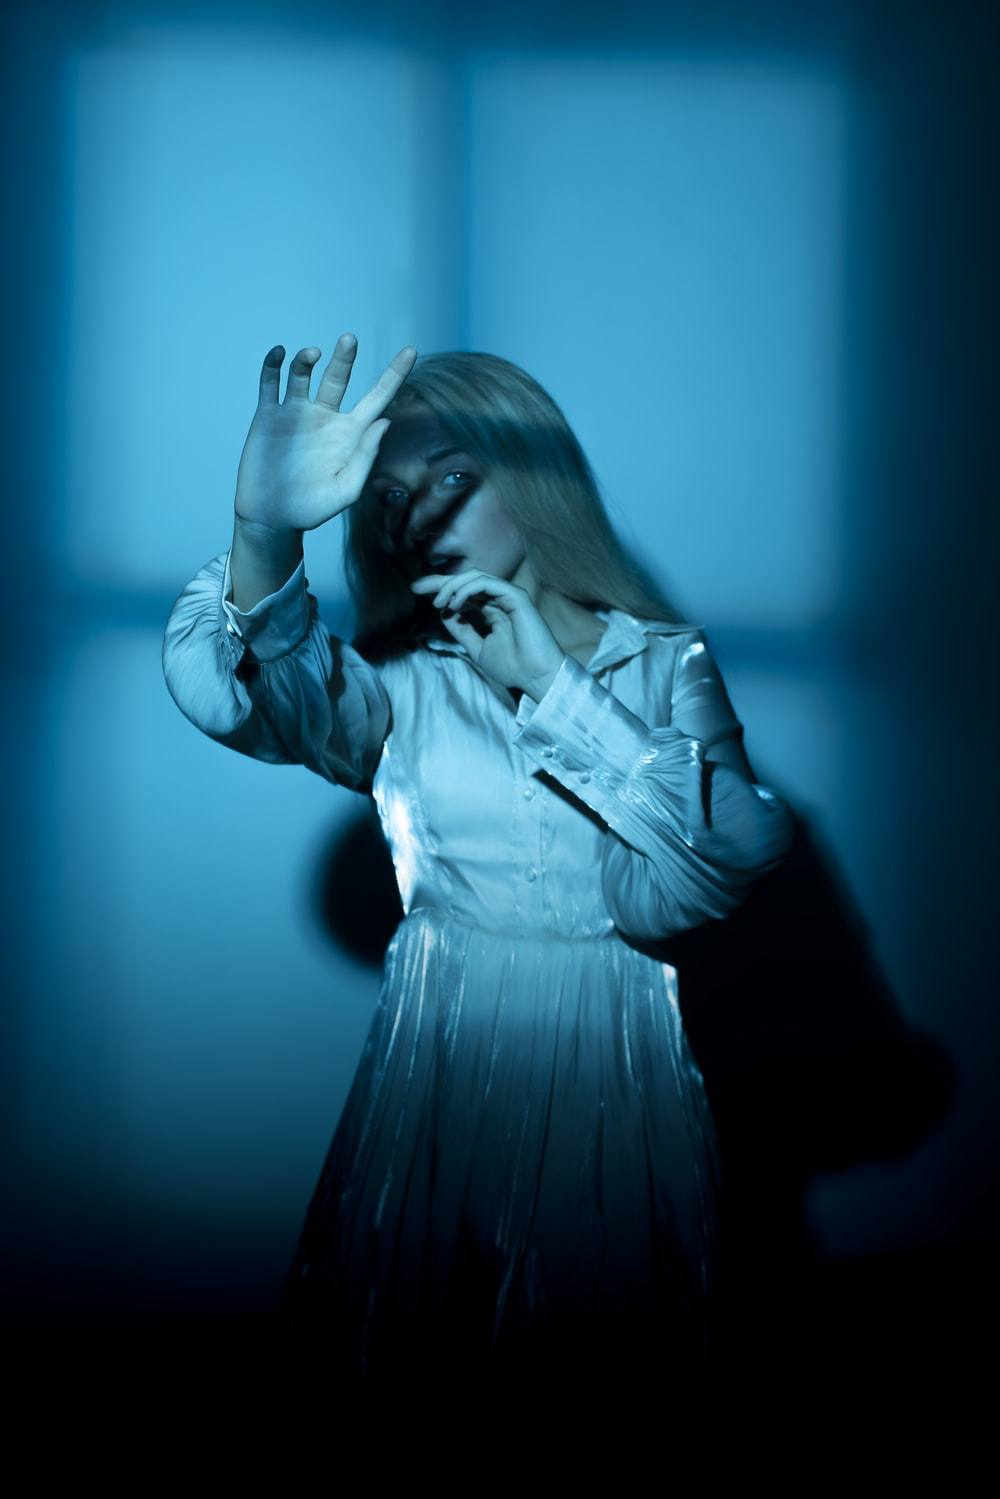 woman in white dress shirt covering her face with her hands